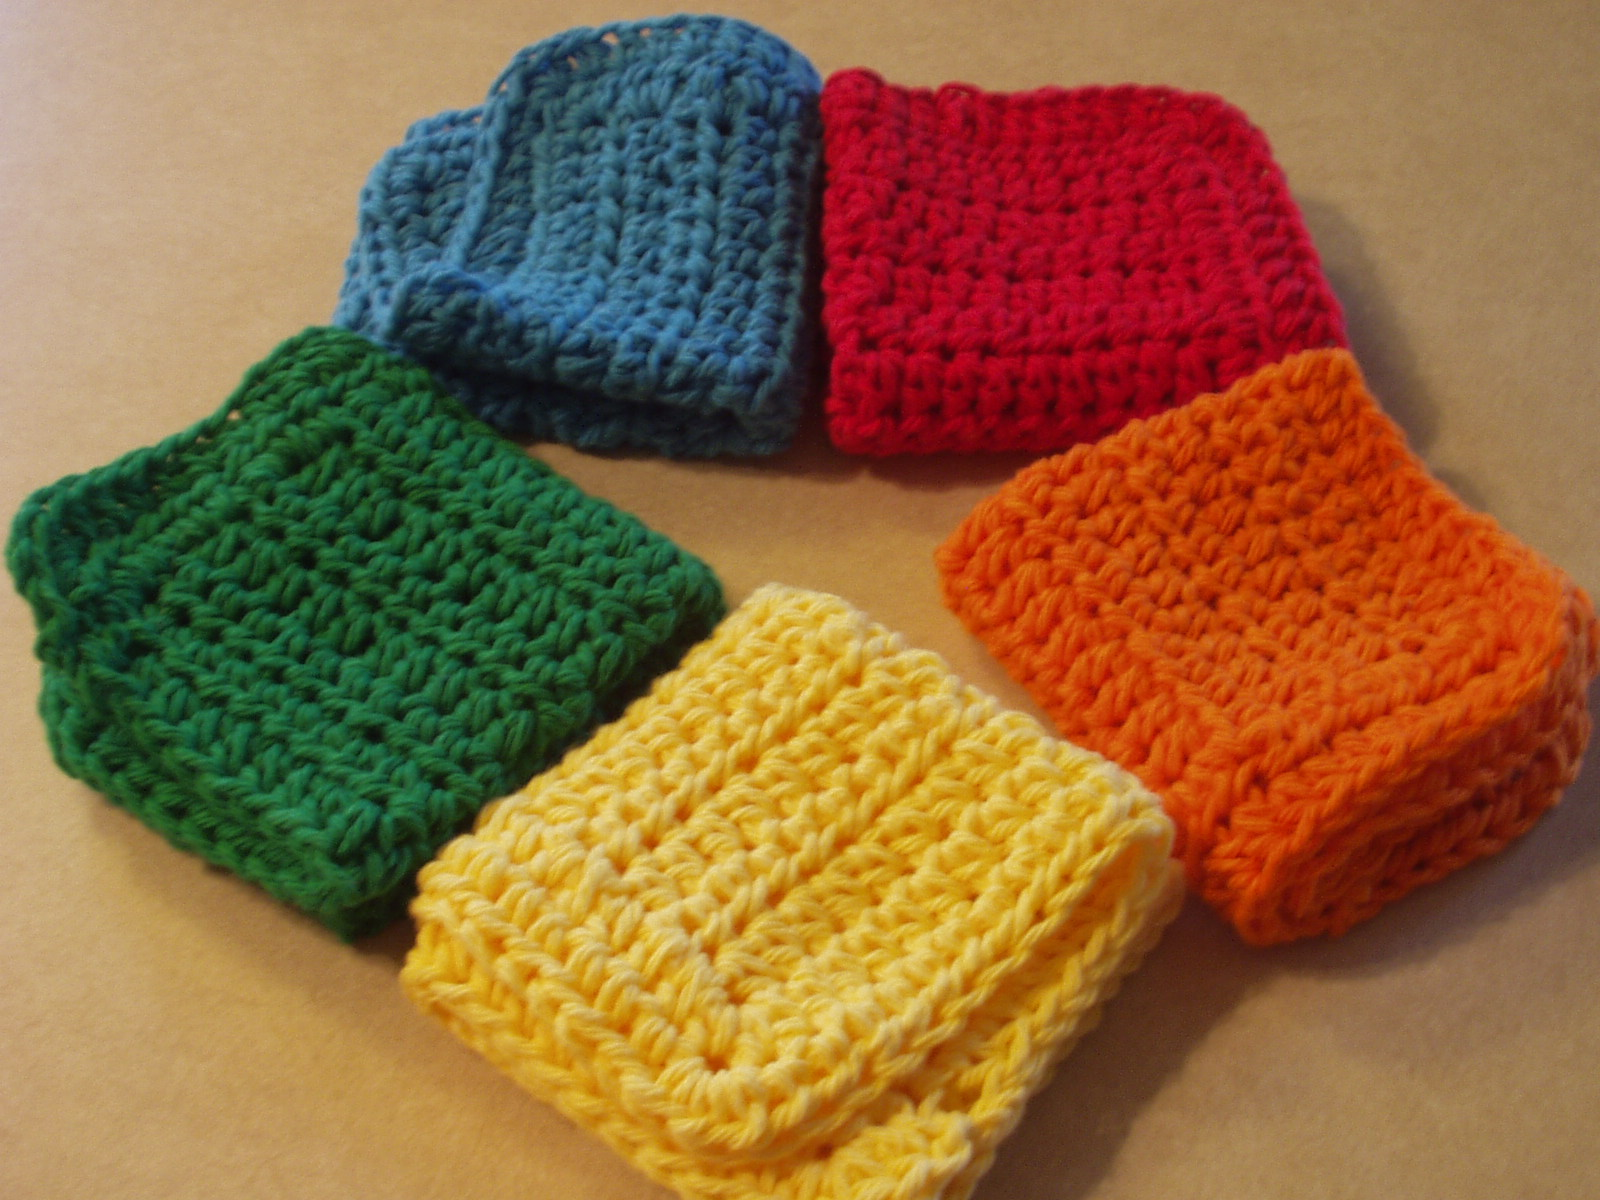 Free Crochet Dish Towel Patterns Crochet Club